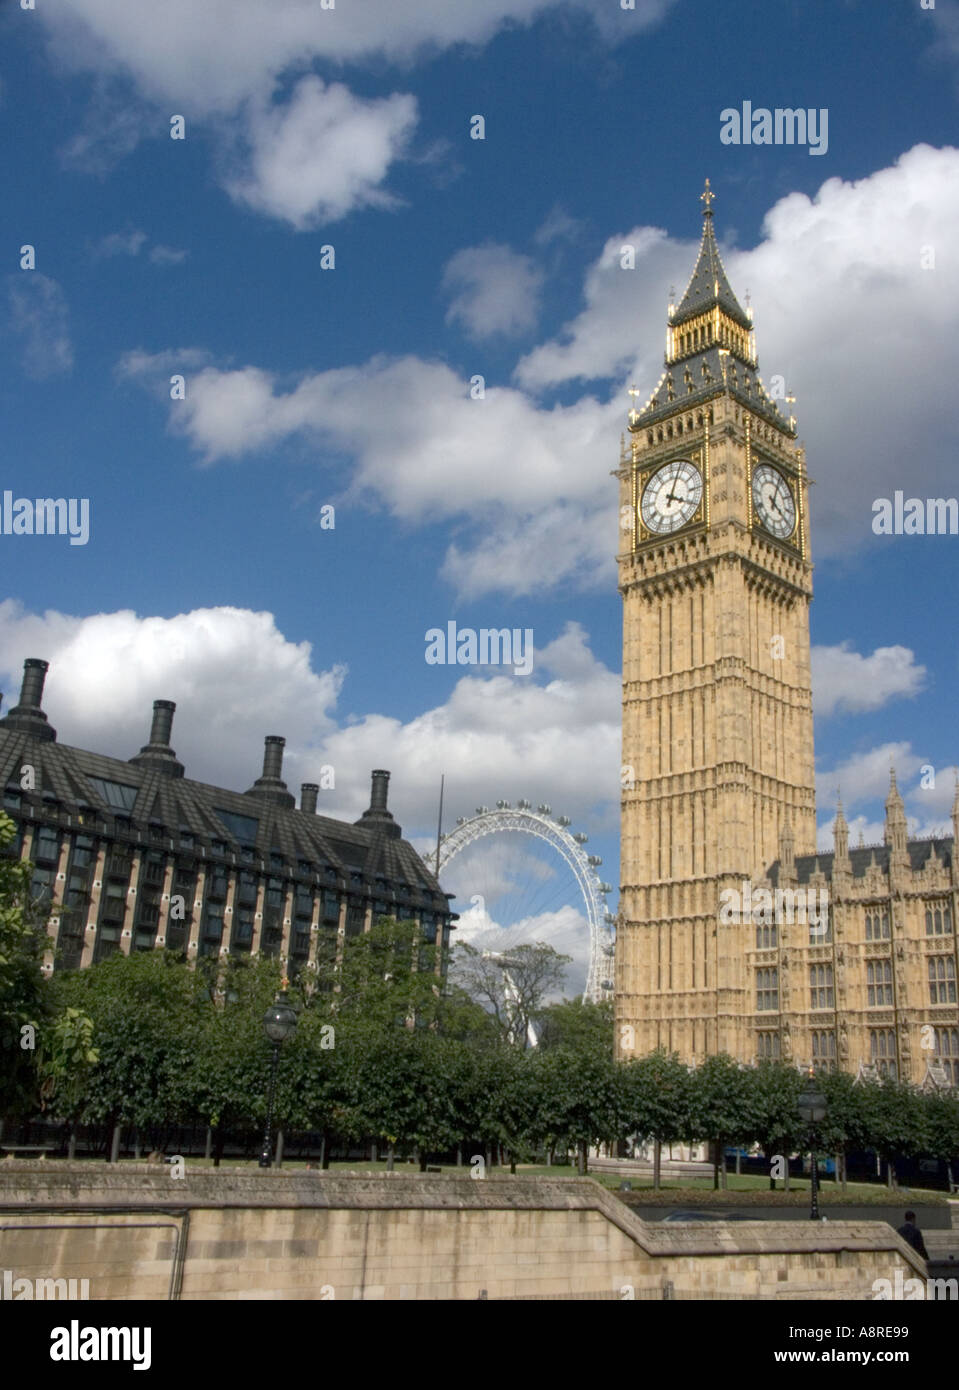 Big Ben and London Eye British English England Big Ben Saint St Stephens Stephen s Steven s Tower  central London, - Stock Image